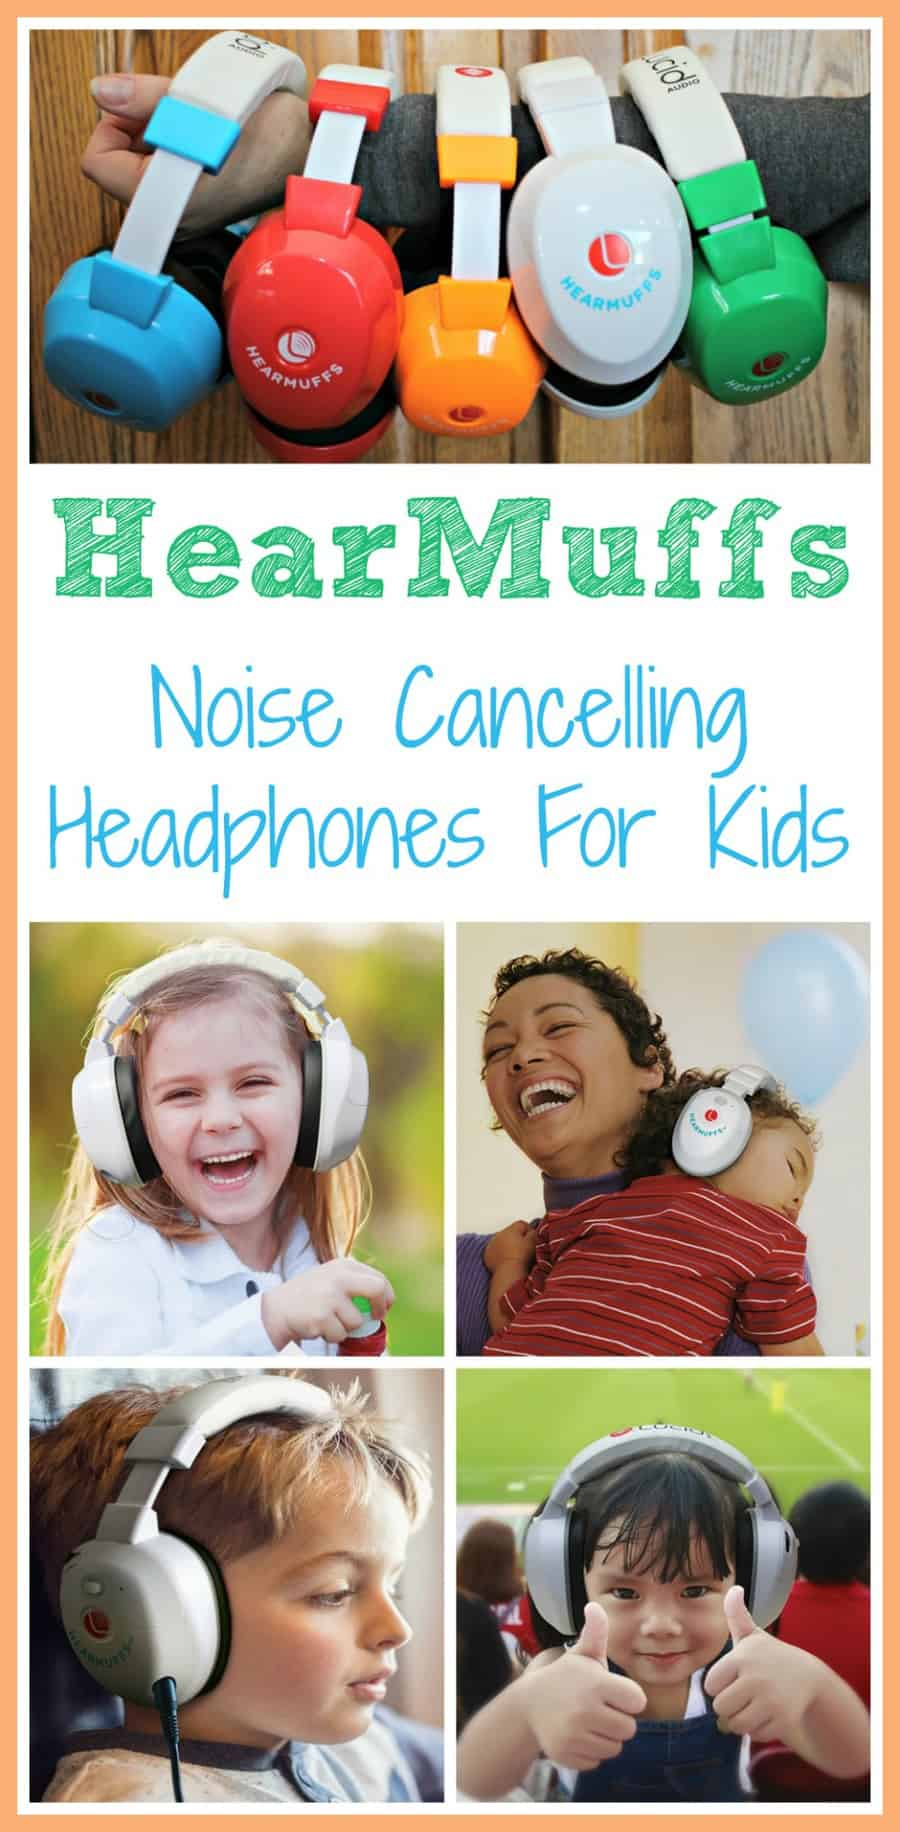 HearMuffs Noise Cancelling Headphones For Kids